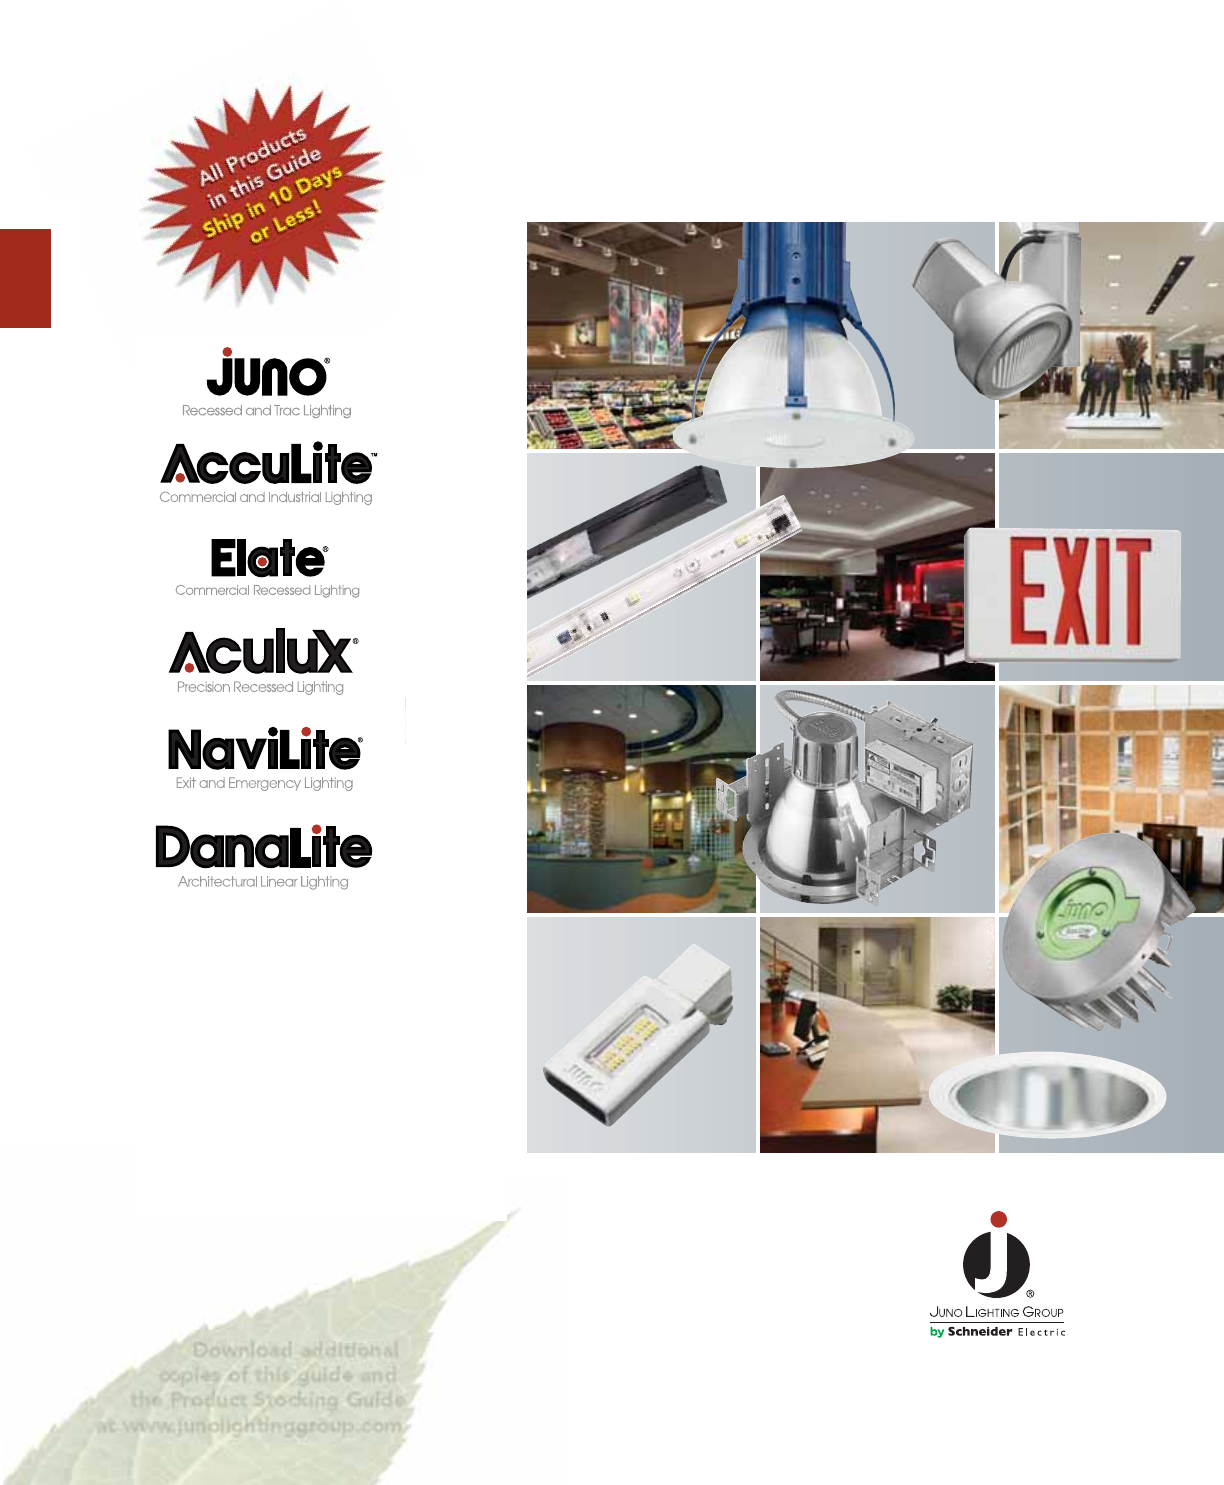 LED Deep Downlight Baffle White Ba Juno 434W-WH Recessed Lighting,Low Voltage